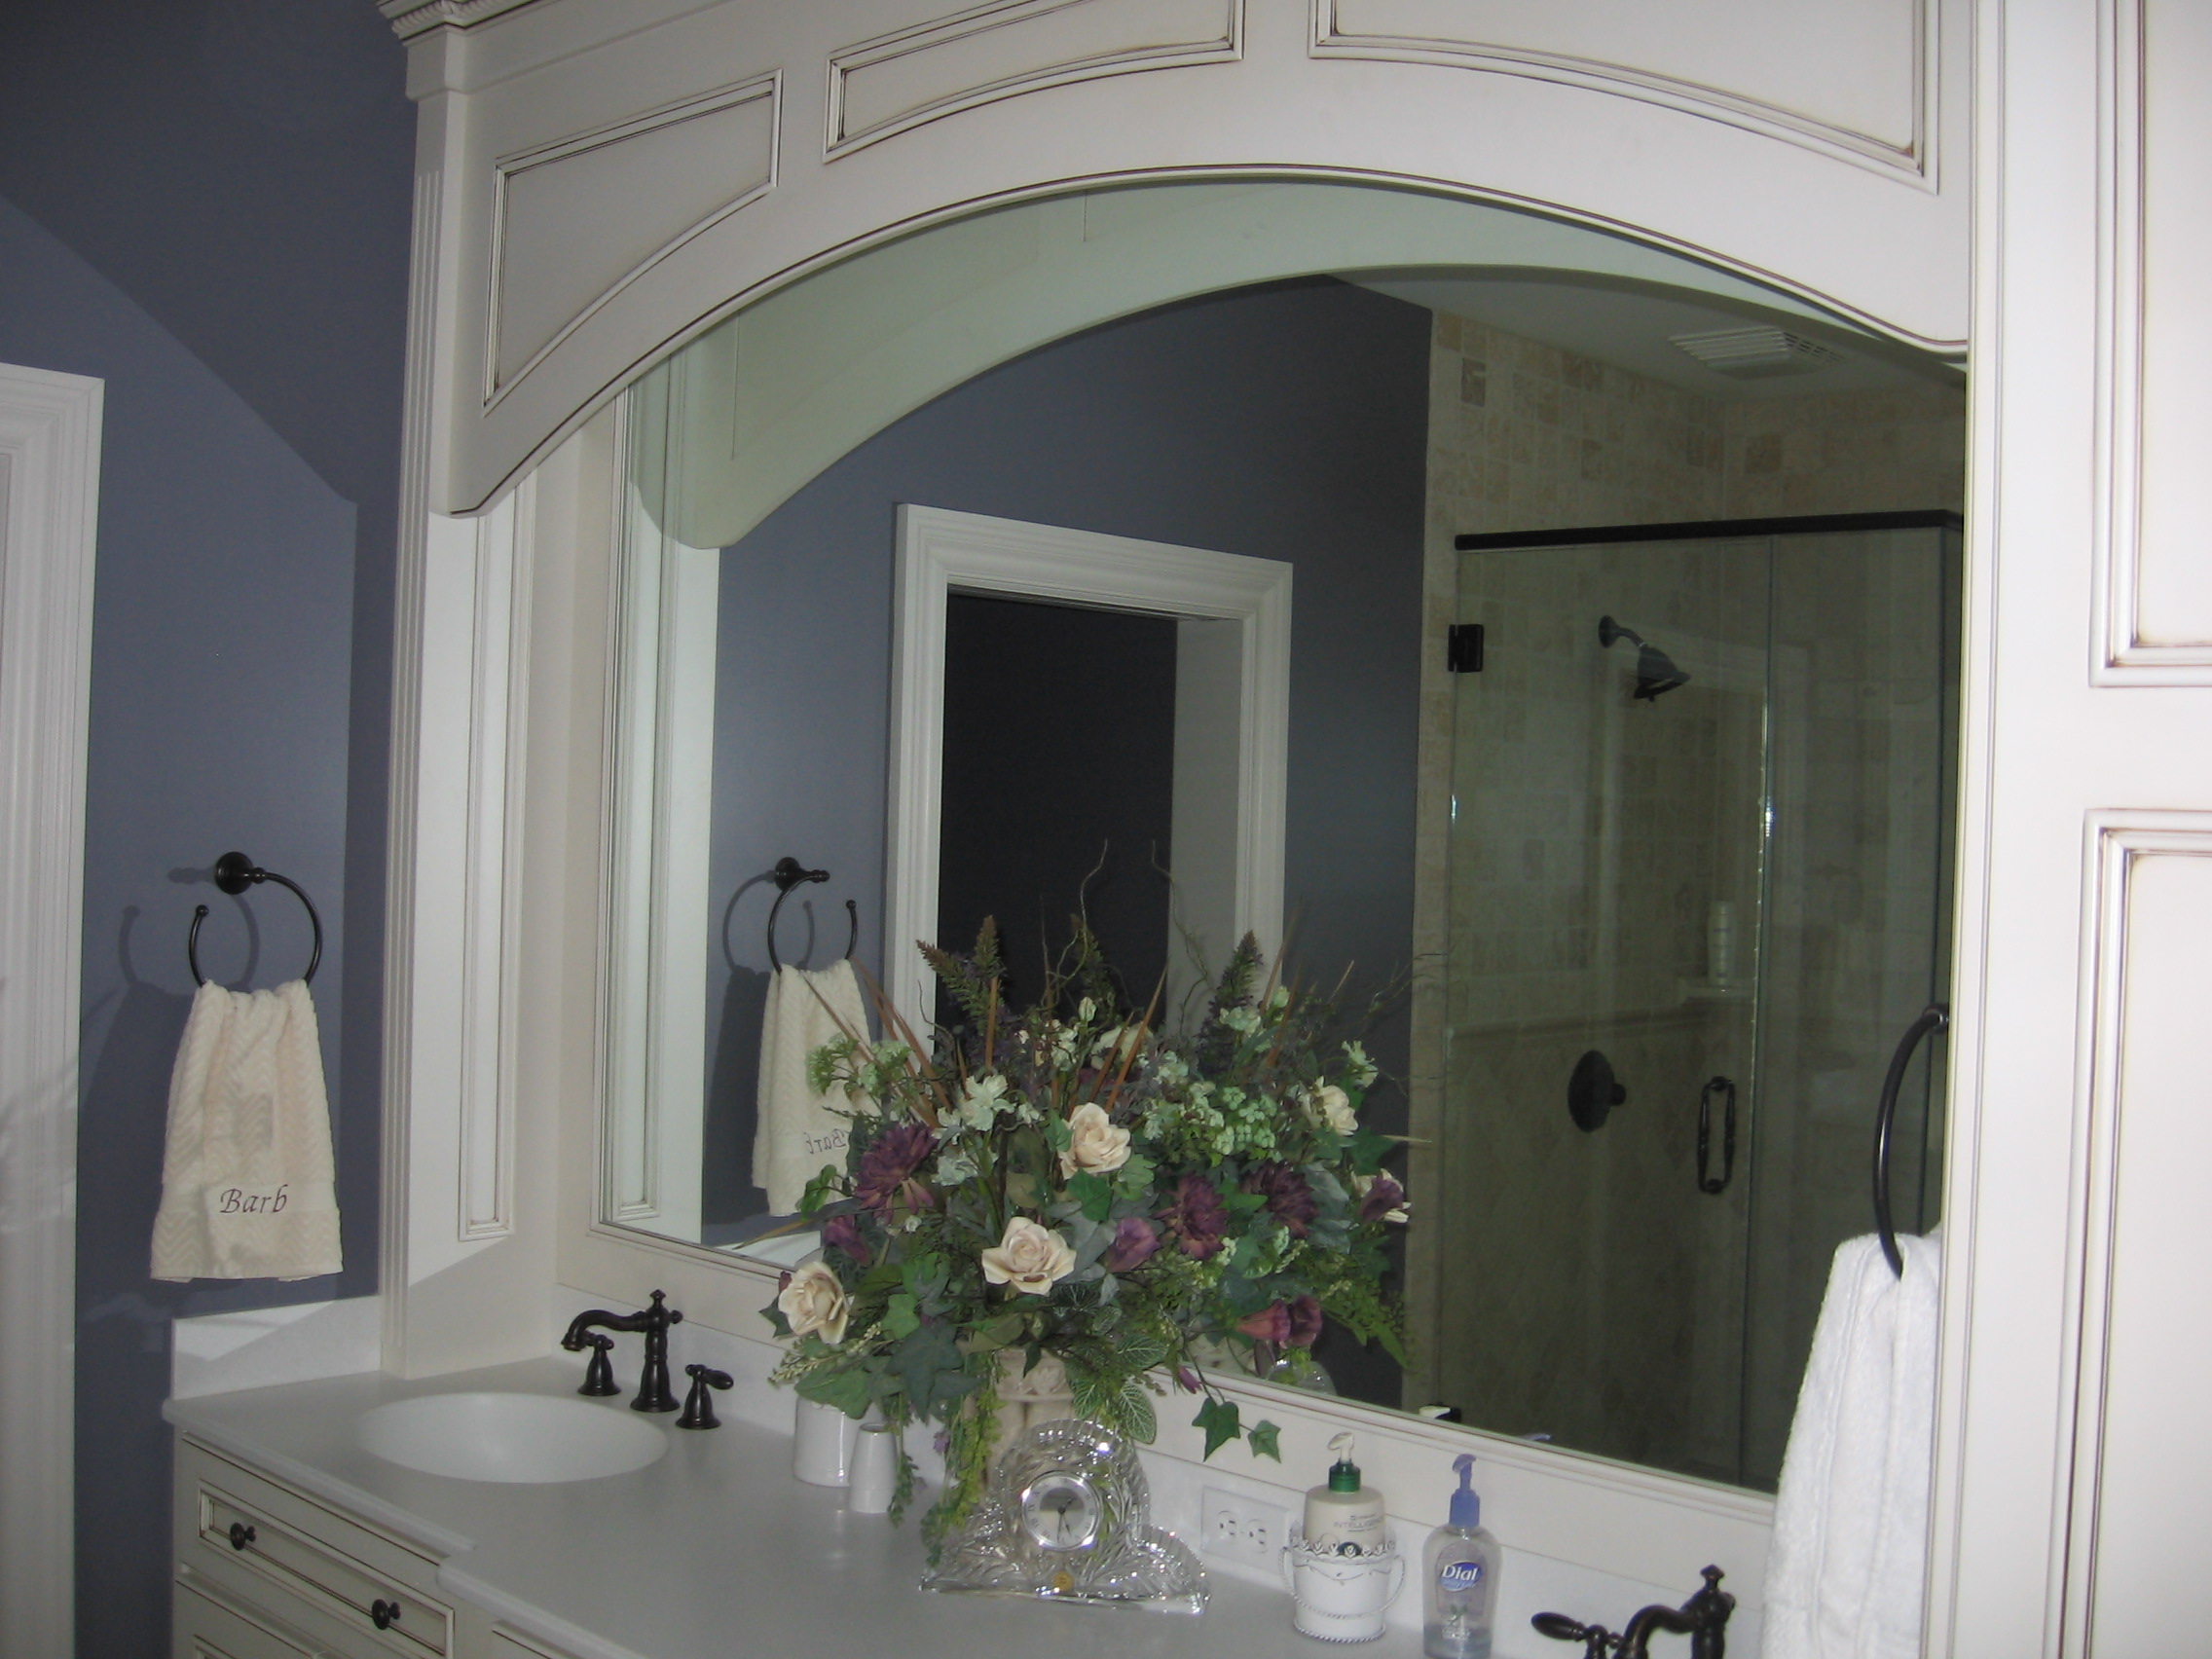 Custom Bathroom Vanities Lancaster Pa custom cabinets for your kitchen, bathroom, office and more